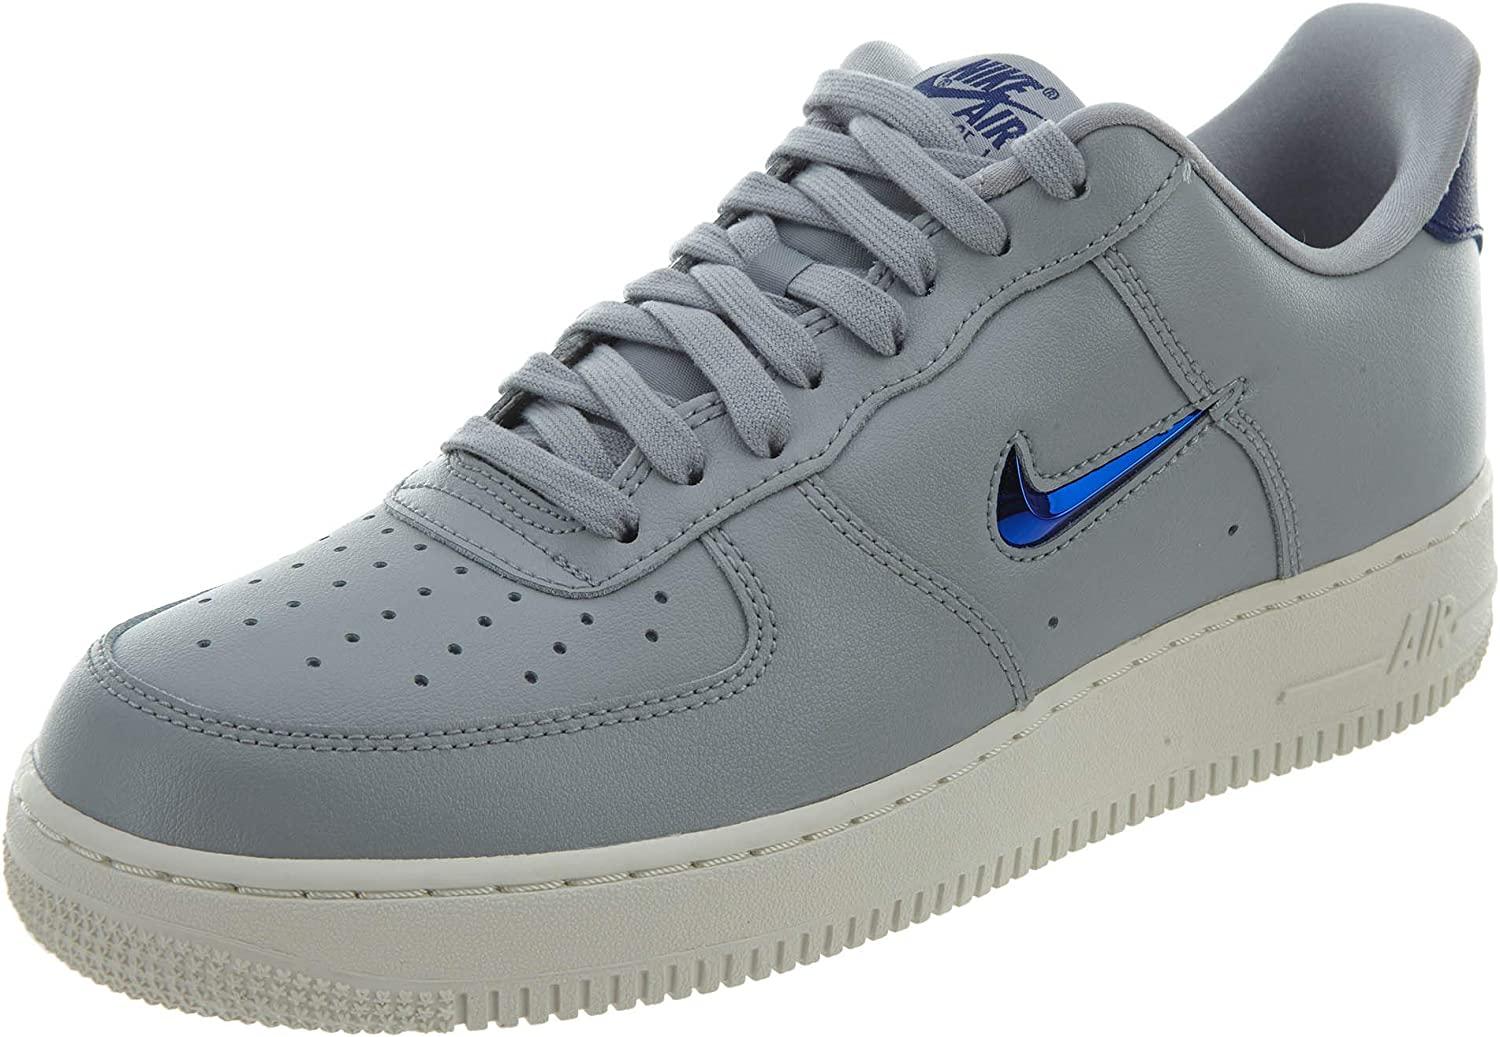 Nike Men's Air Force 1 '07 Lv8 Lthr Fitness shoes